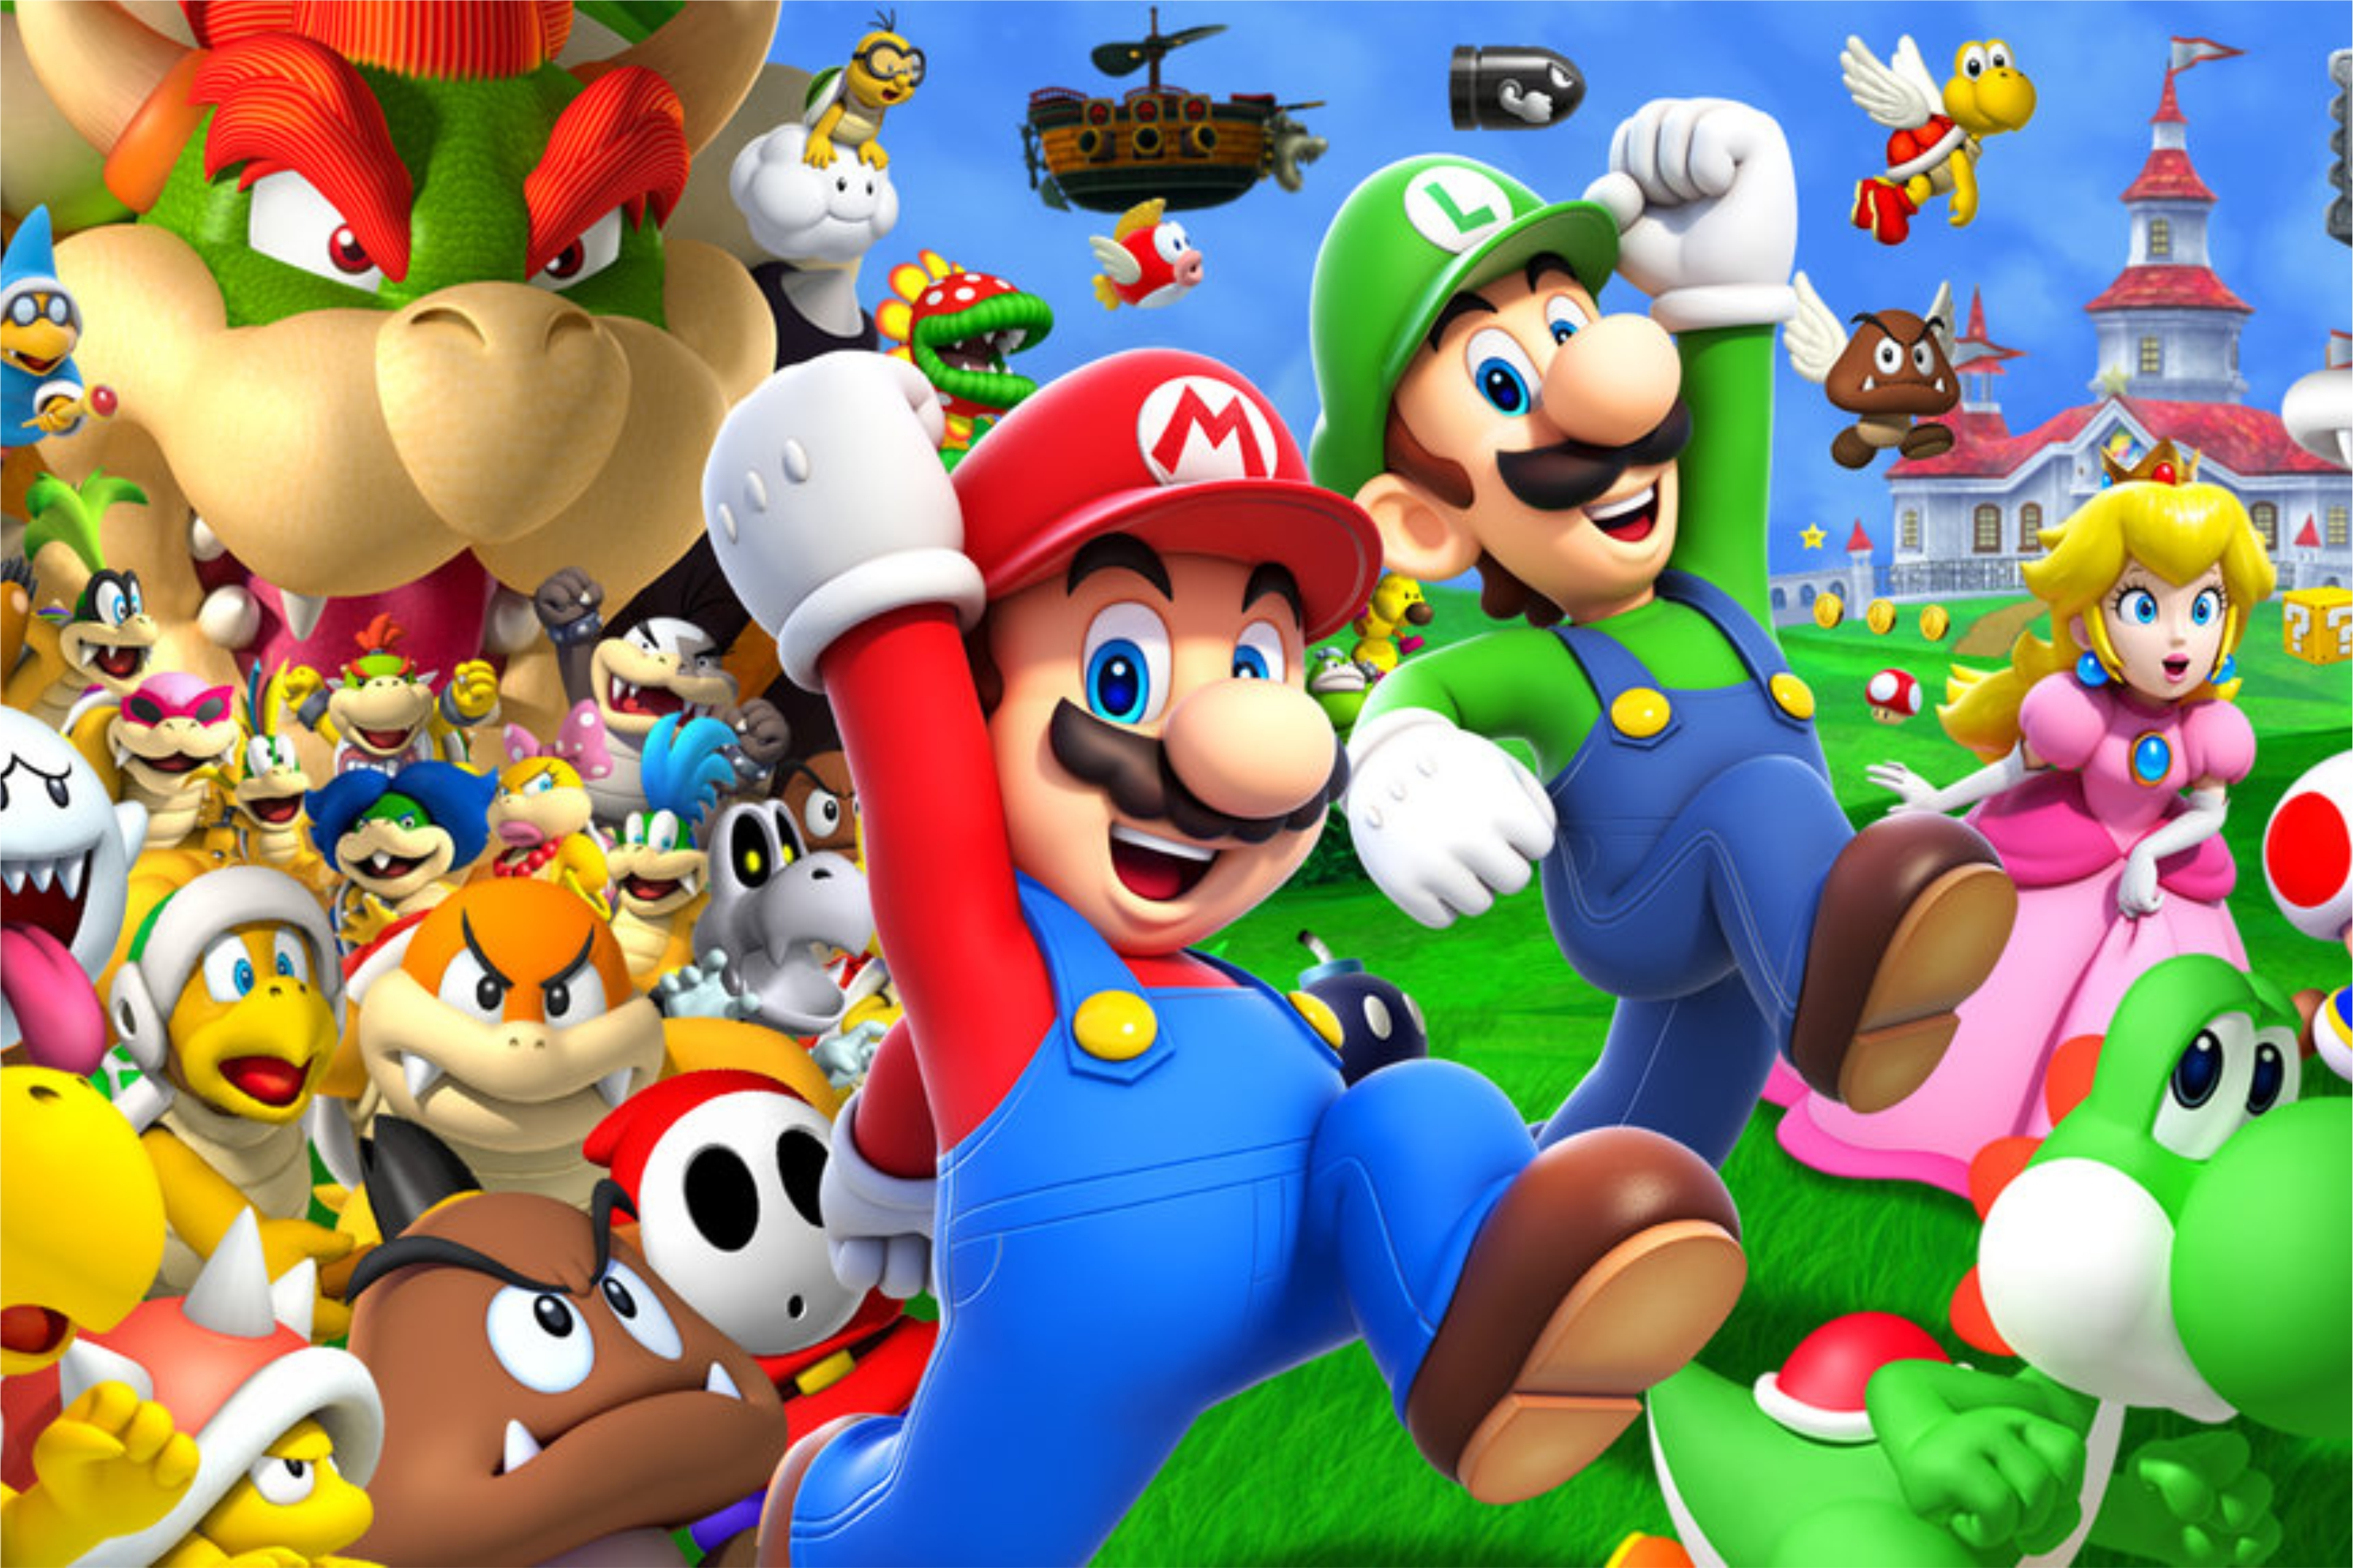 Wii U Screen Savers : Super mario bros arriva il film dell idraulico più amato